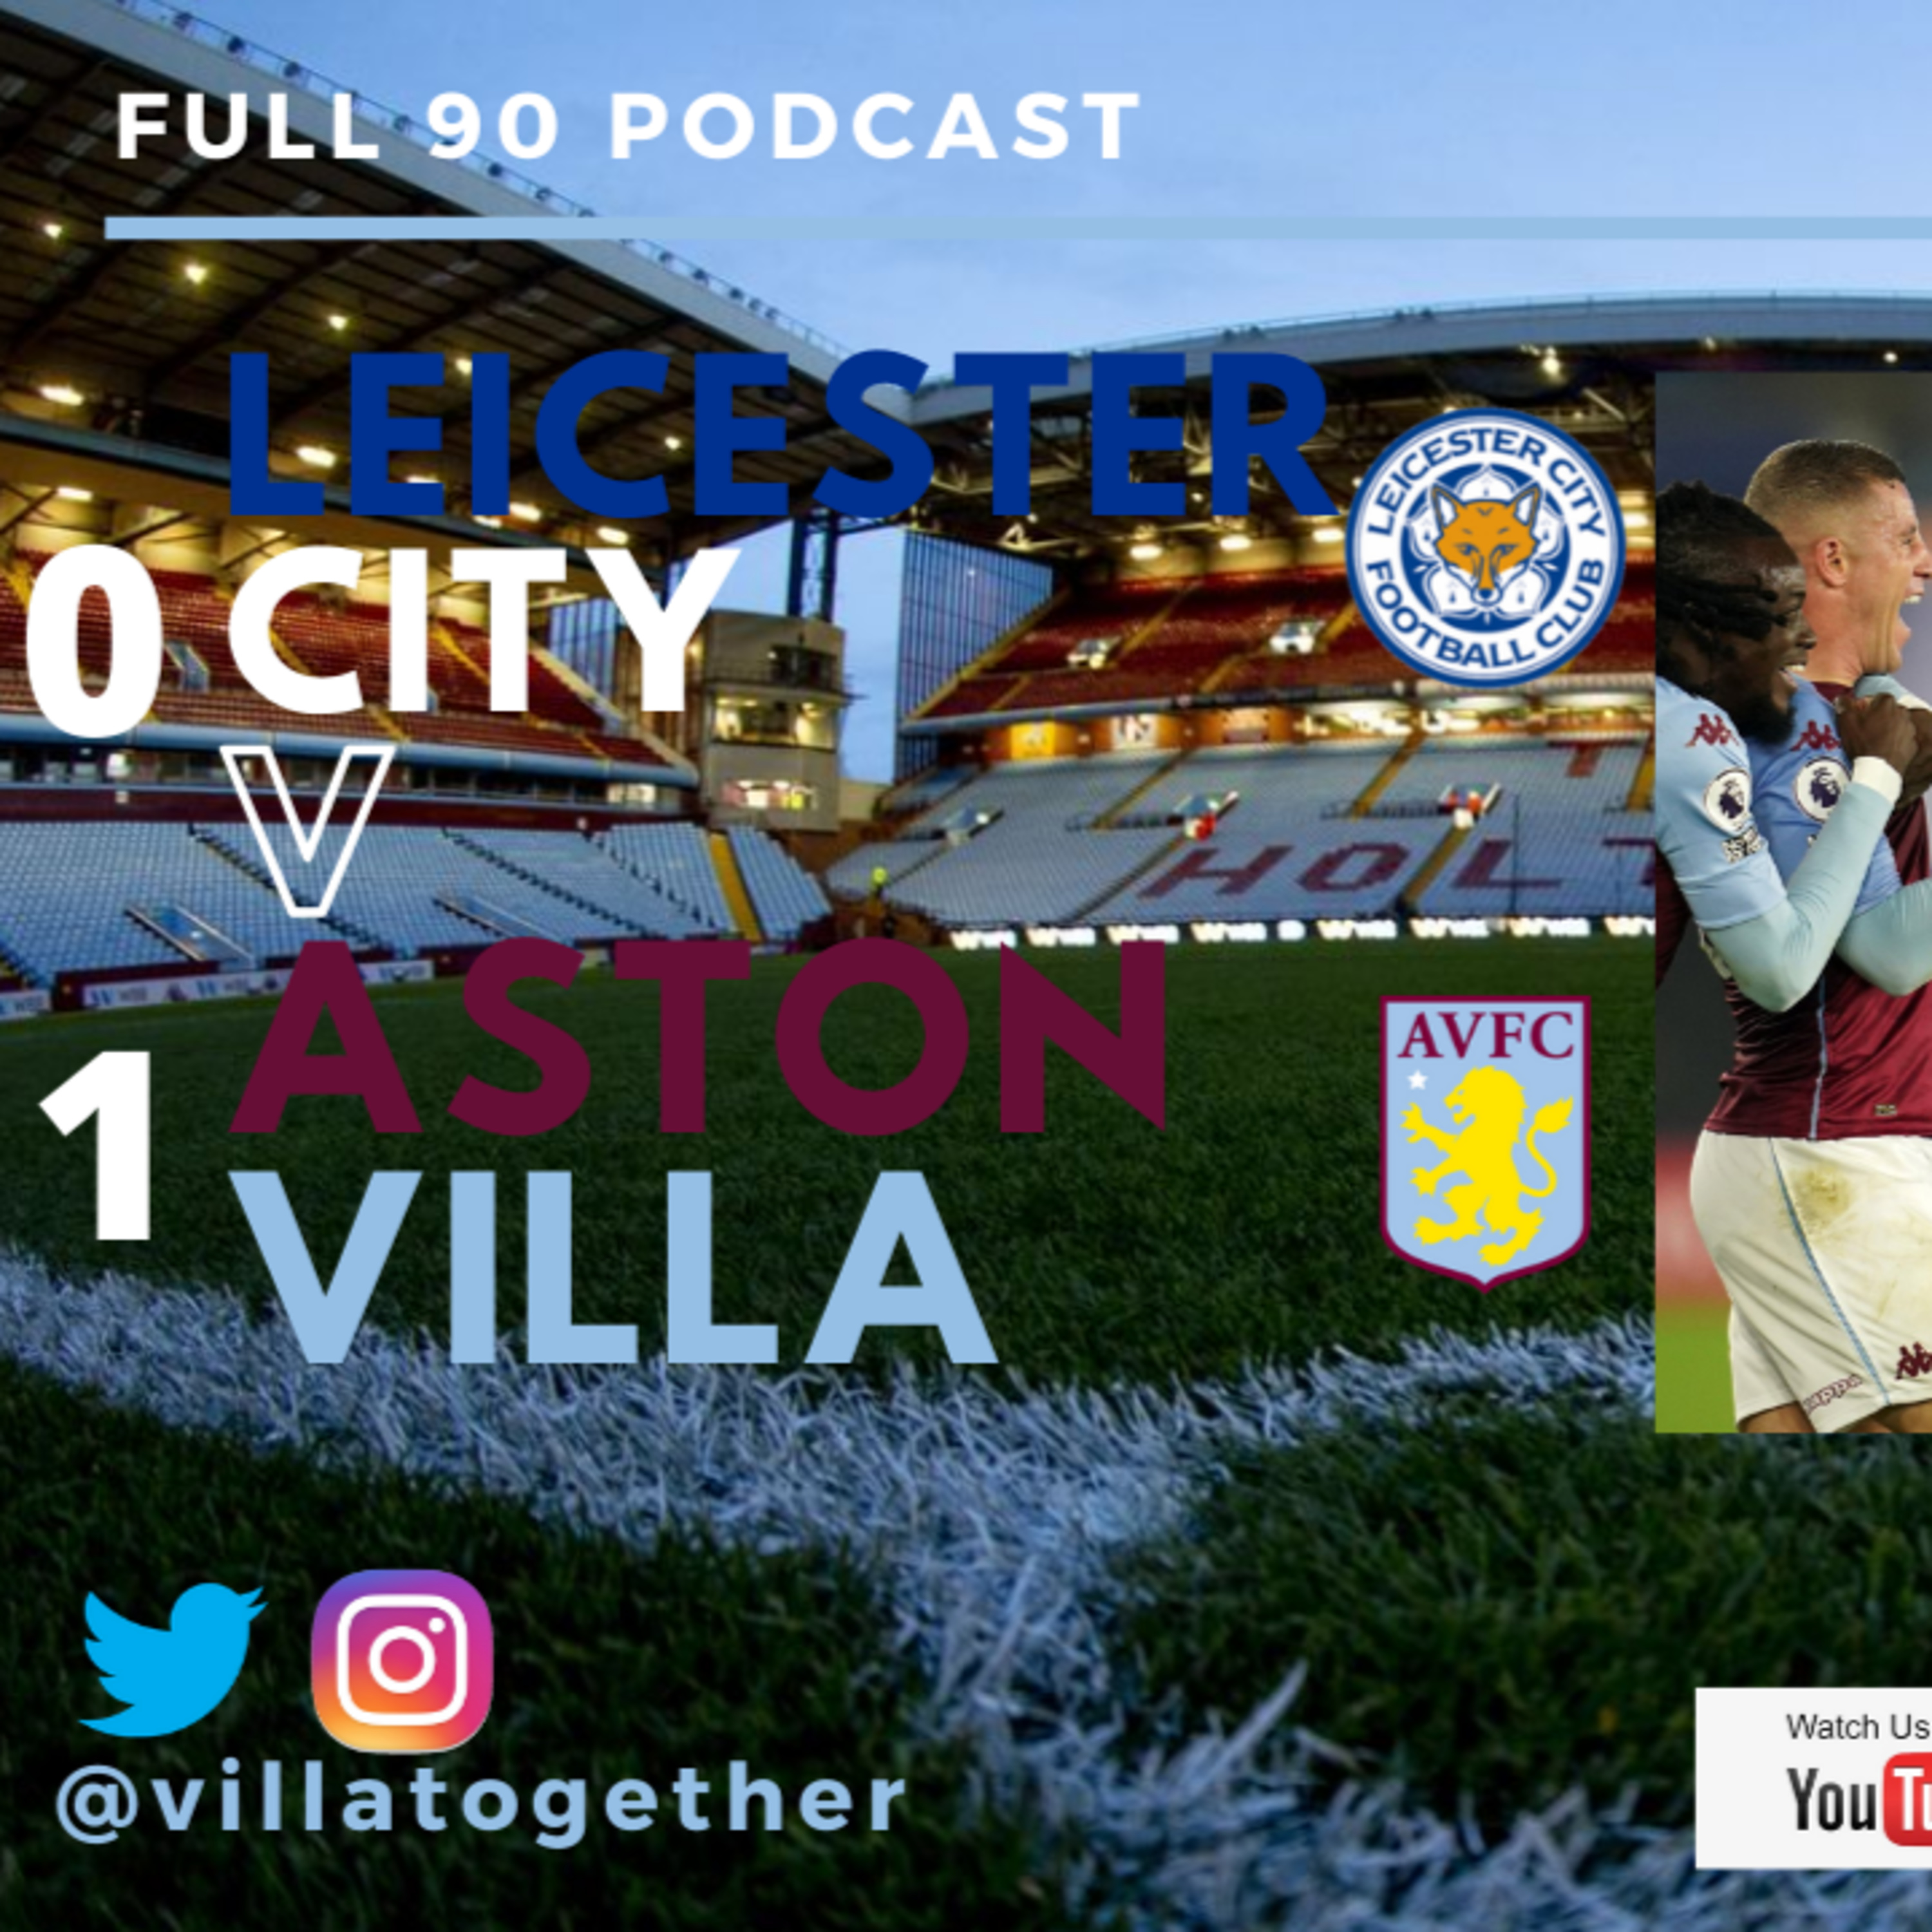 Villa Together - The Full 90 Podcast - Leicester City 0-1 Aston Villa